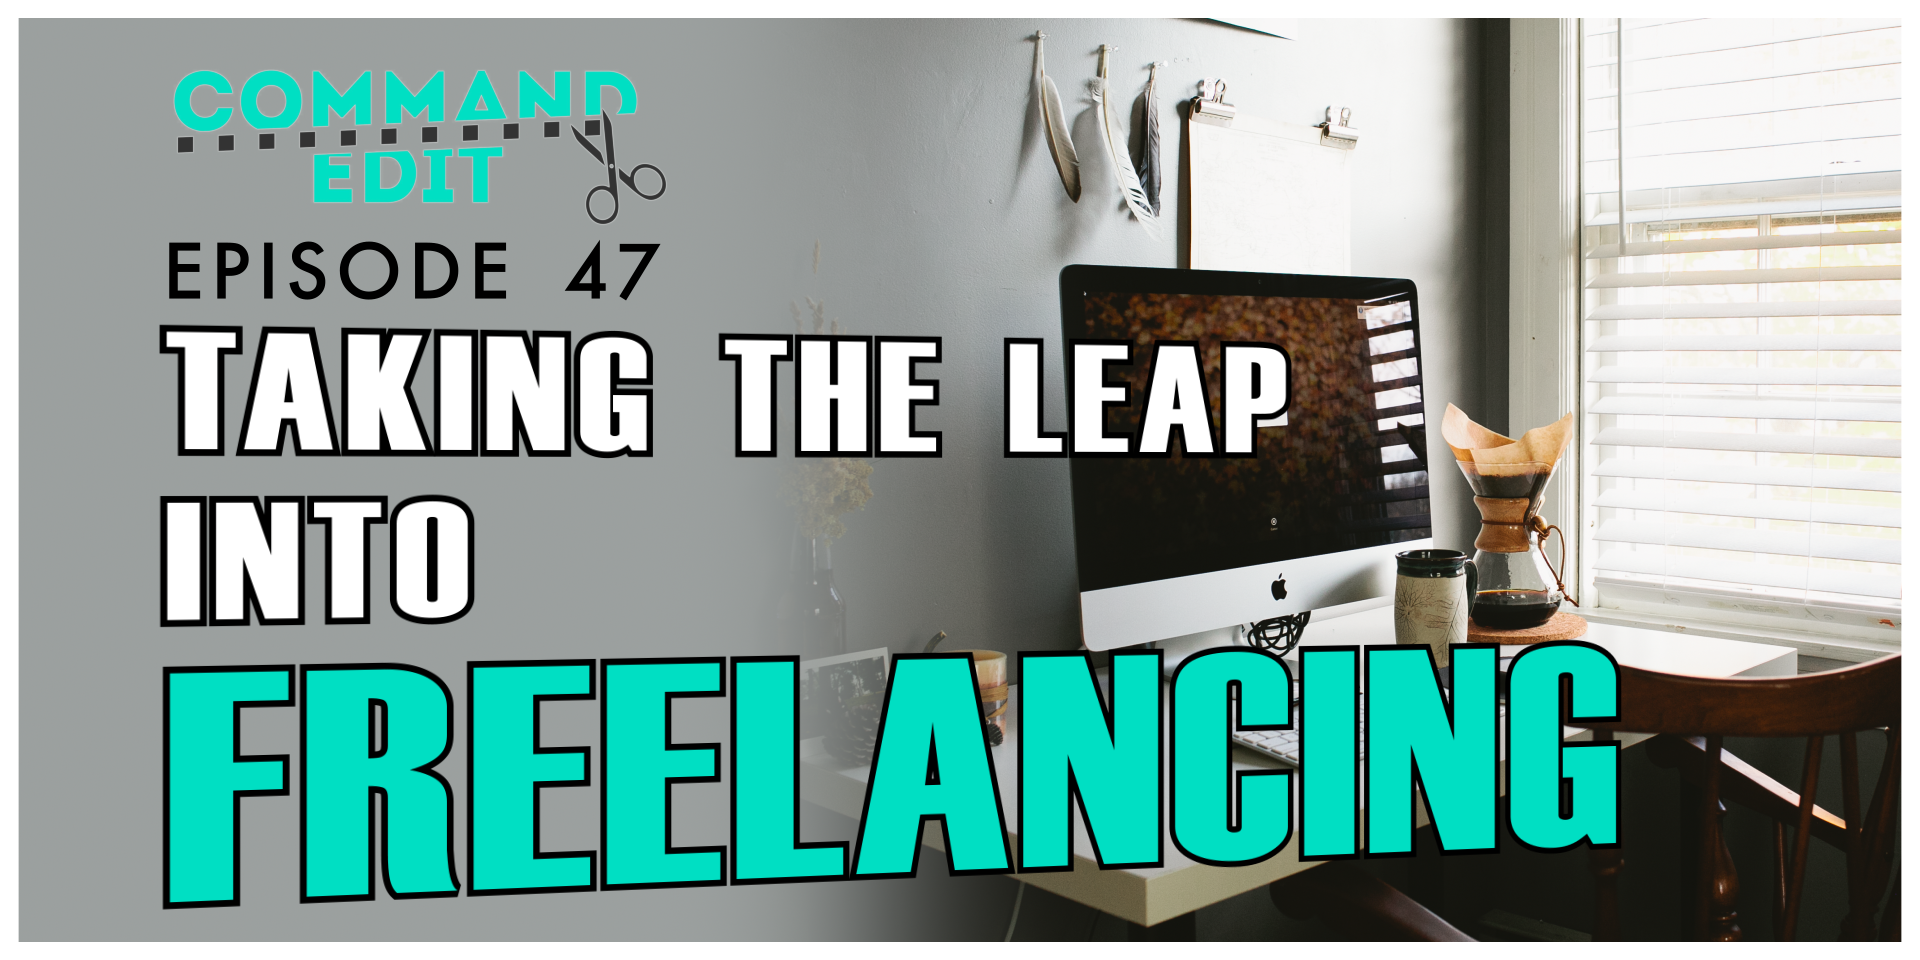 Taking the leap to freelance film and video editing Episode 47 of Command Edit Podcast